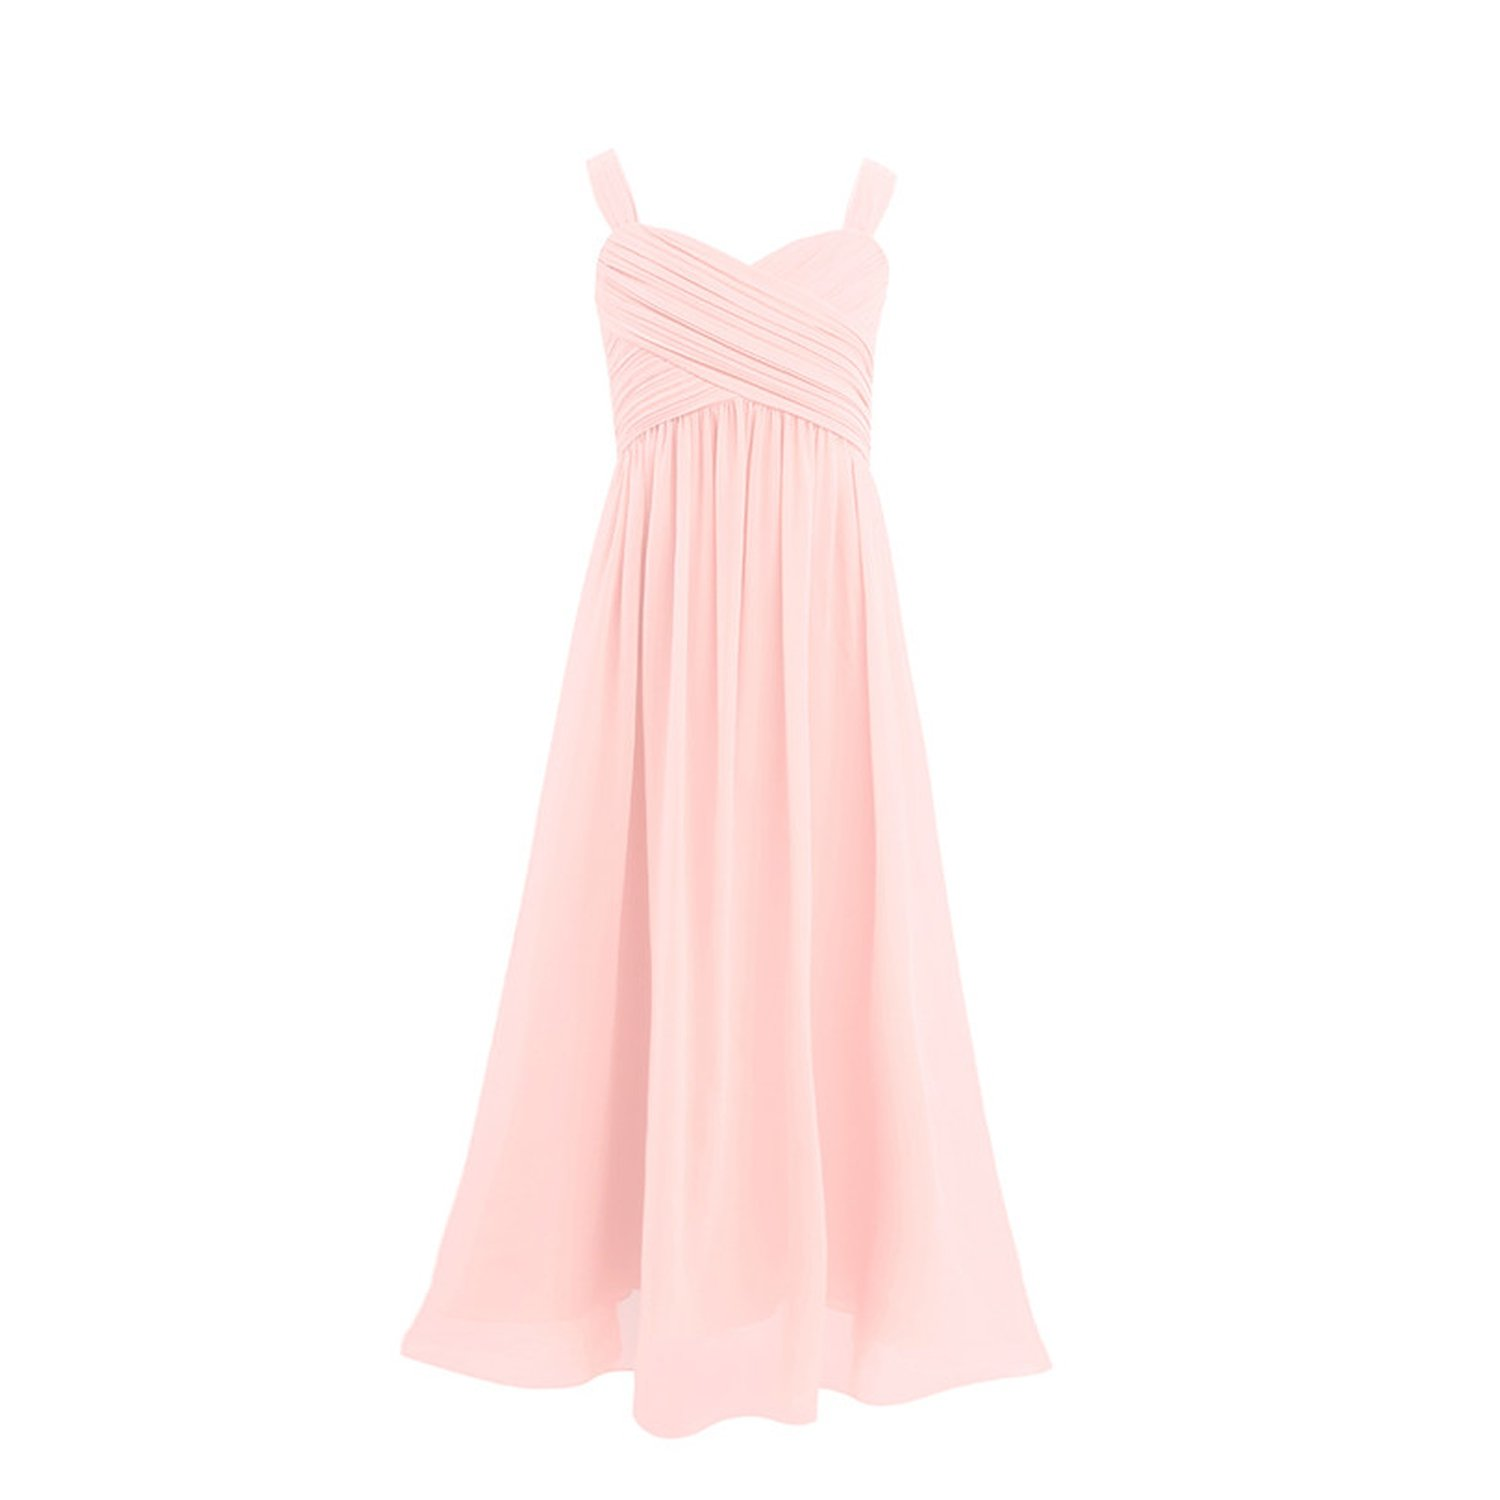 Princess Girls Chiffon Pleated Wide Shoulder Straps Flower Girl Dress Ruched Wedding Party Dress,Pearl Pink,Child-4